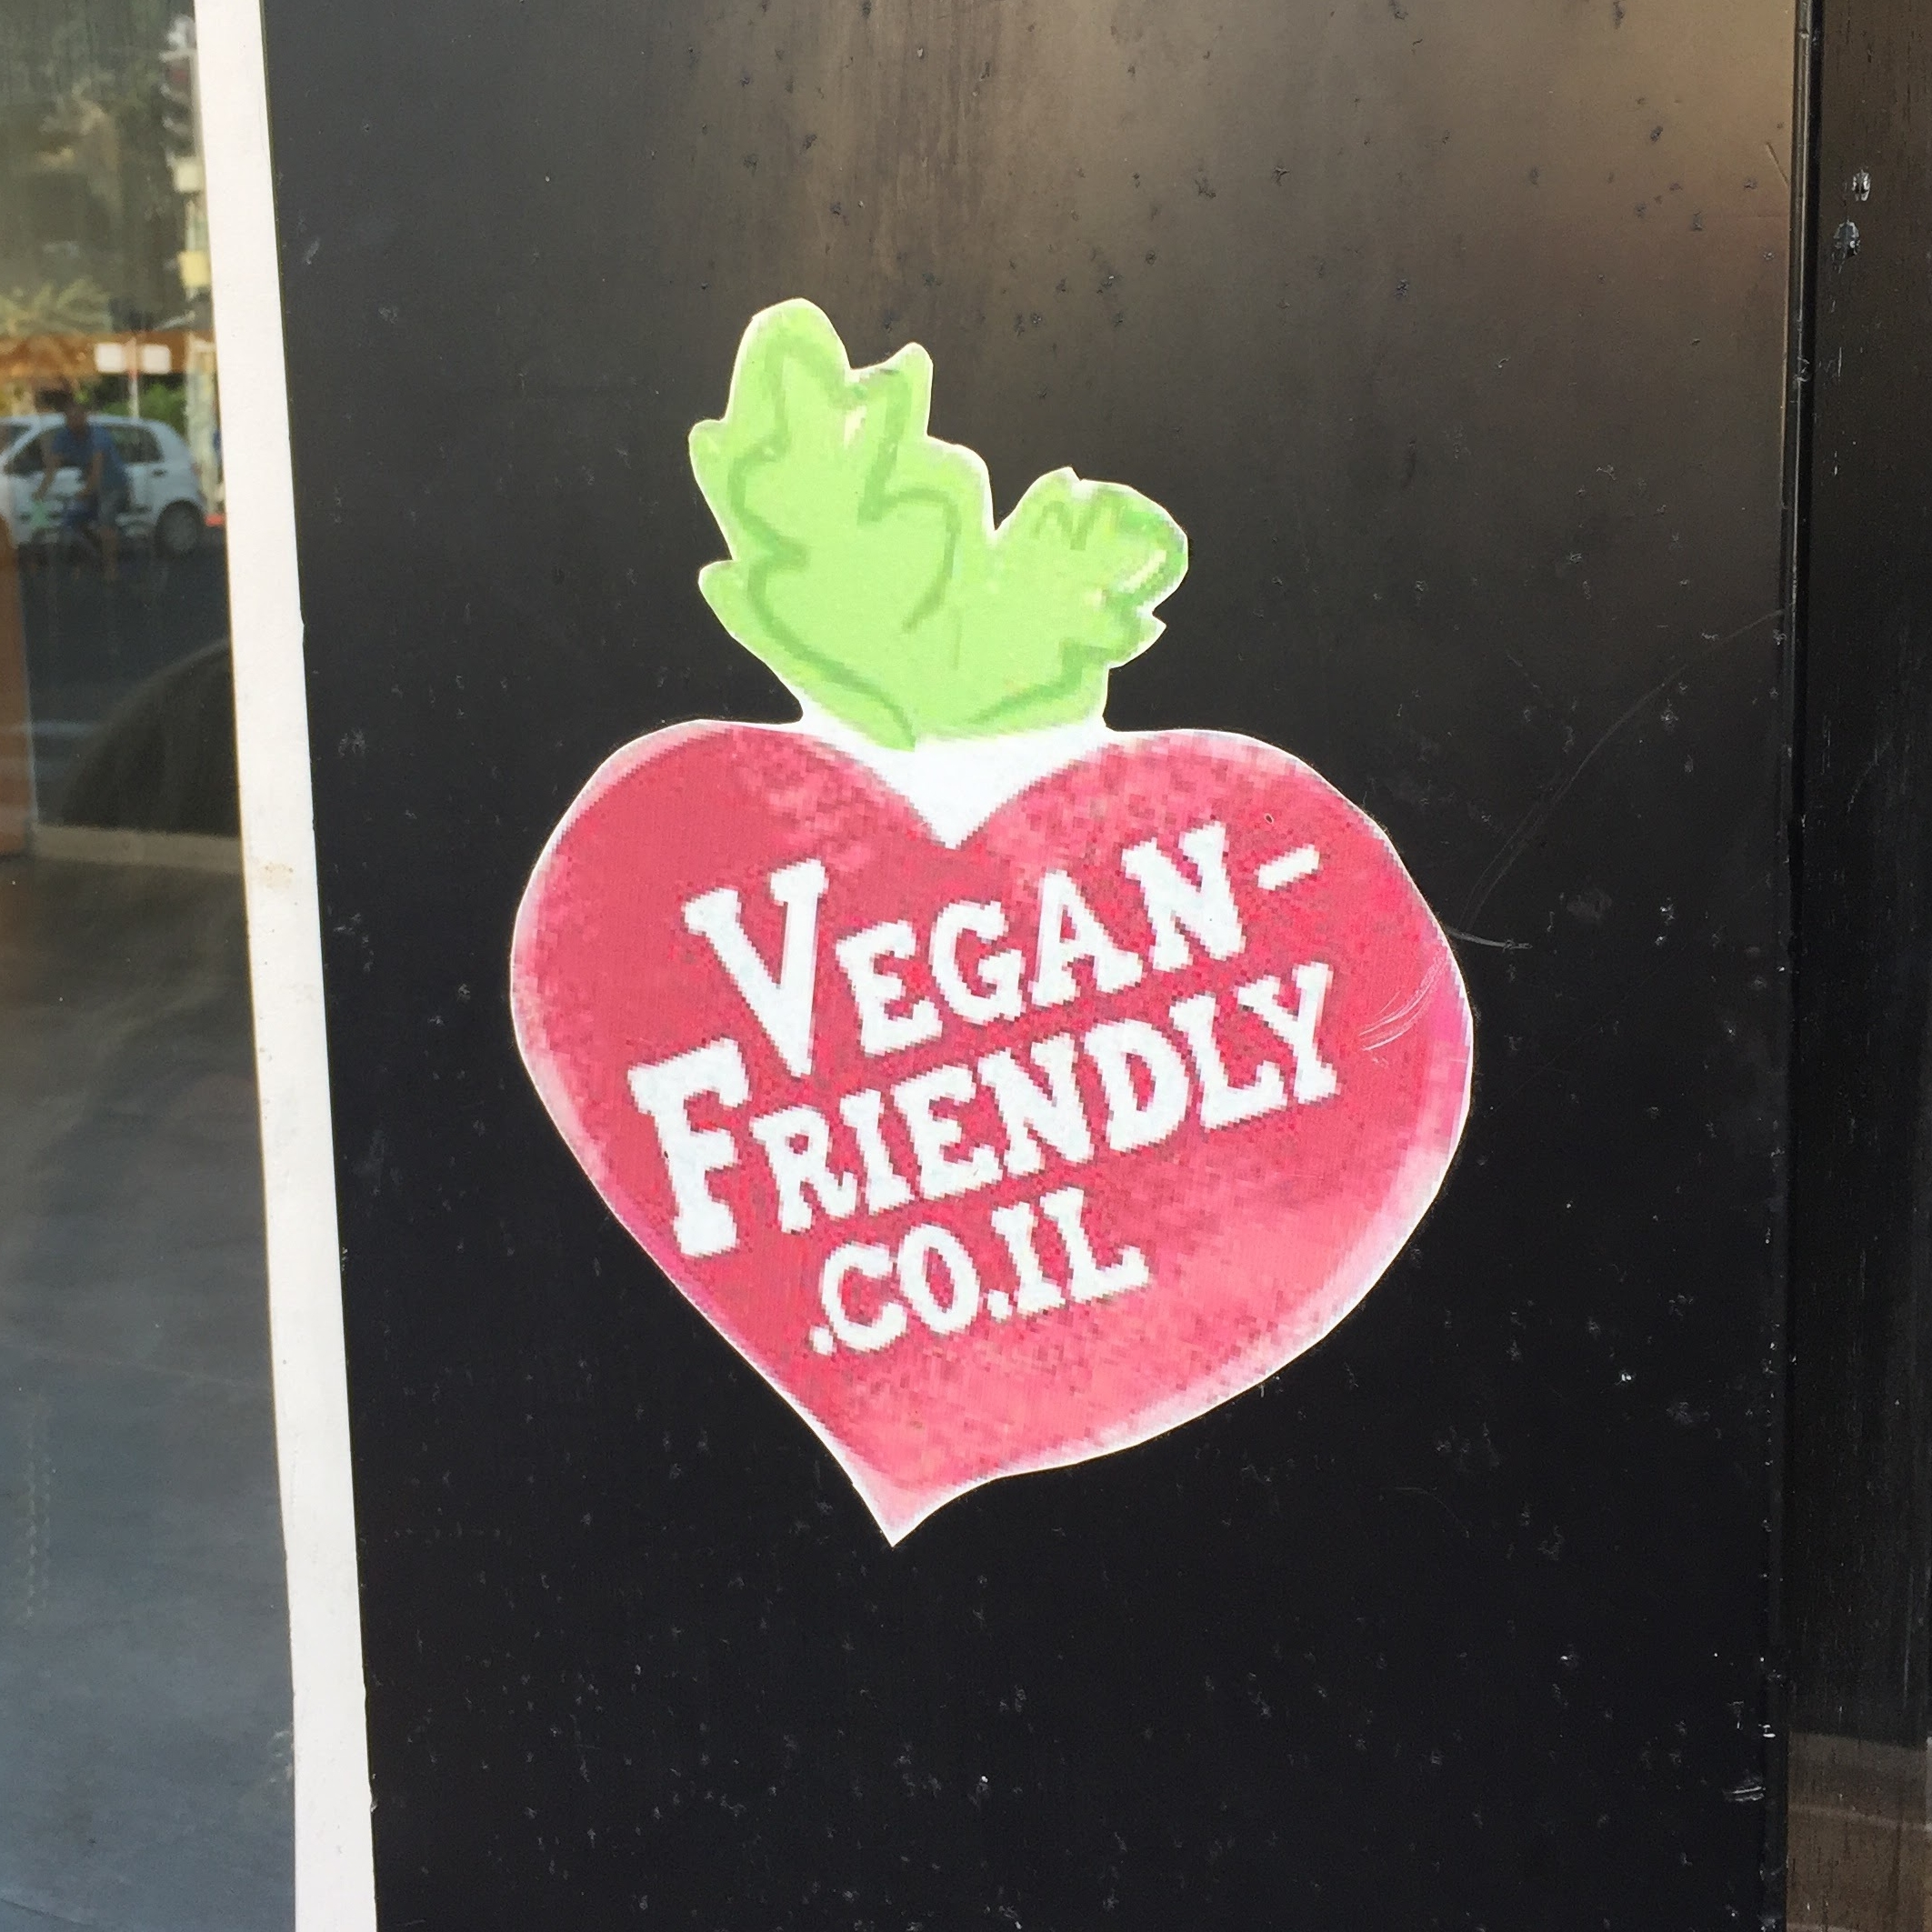 """Look for the """" Vegan-Friendly """" label at businesses and on products that are certified as vegan by the Vegan Friendly Project in Israel. Photo by: Love Wild Live Free."""